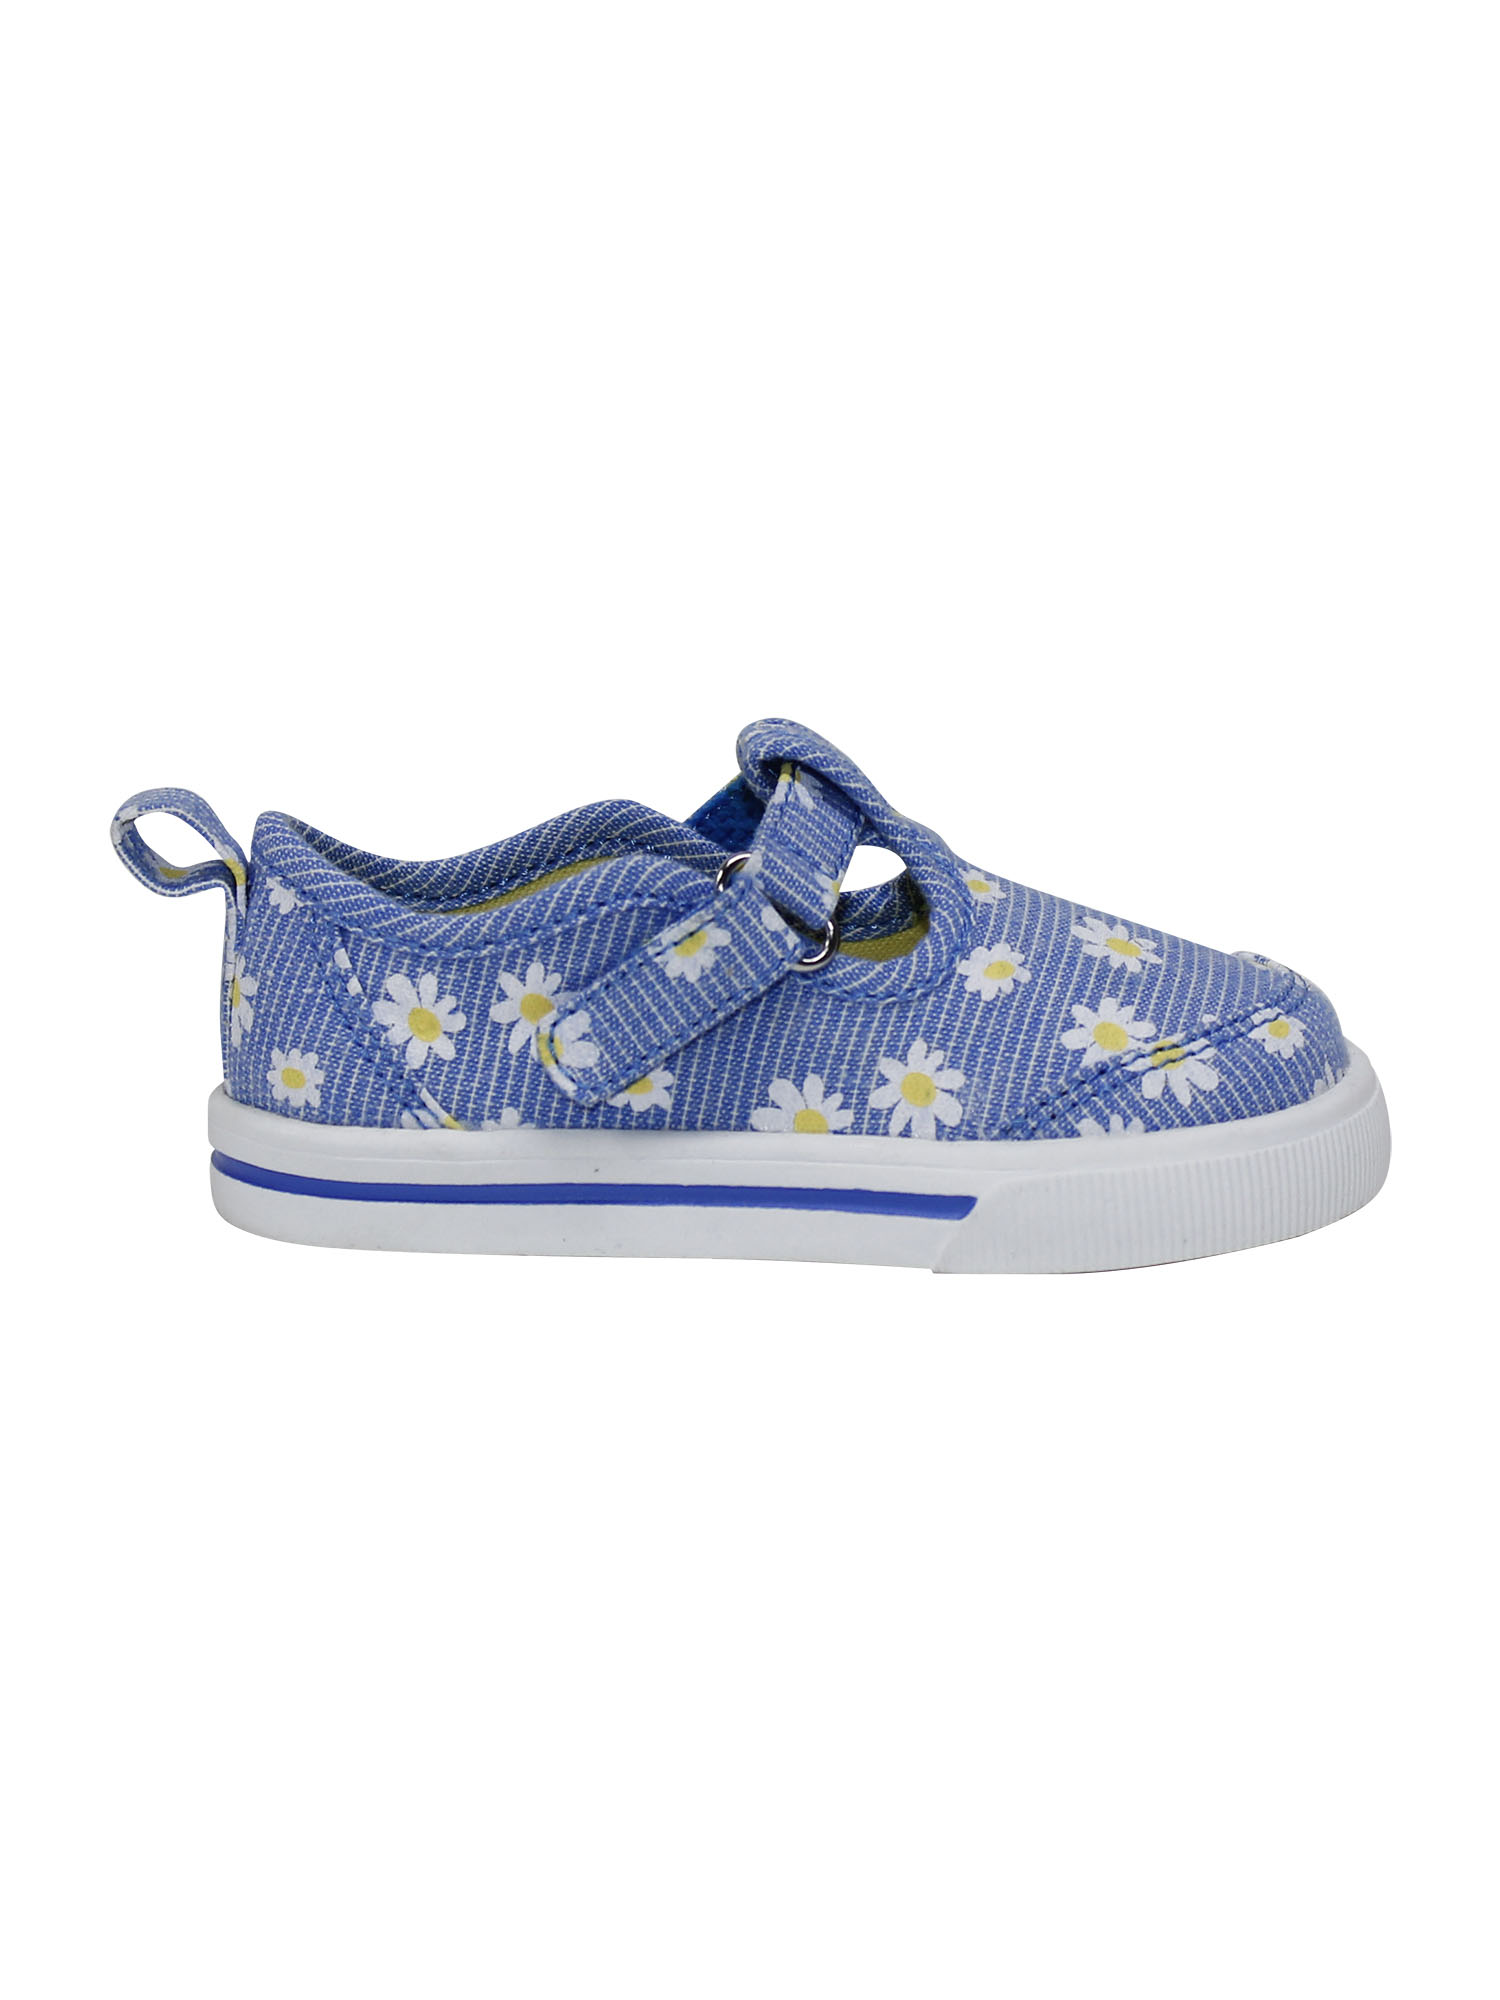 Garanimals Infant Baby Girls Blue Casual T-Strap Canvas Shoes w//Stars Size 4 NEW